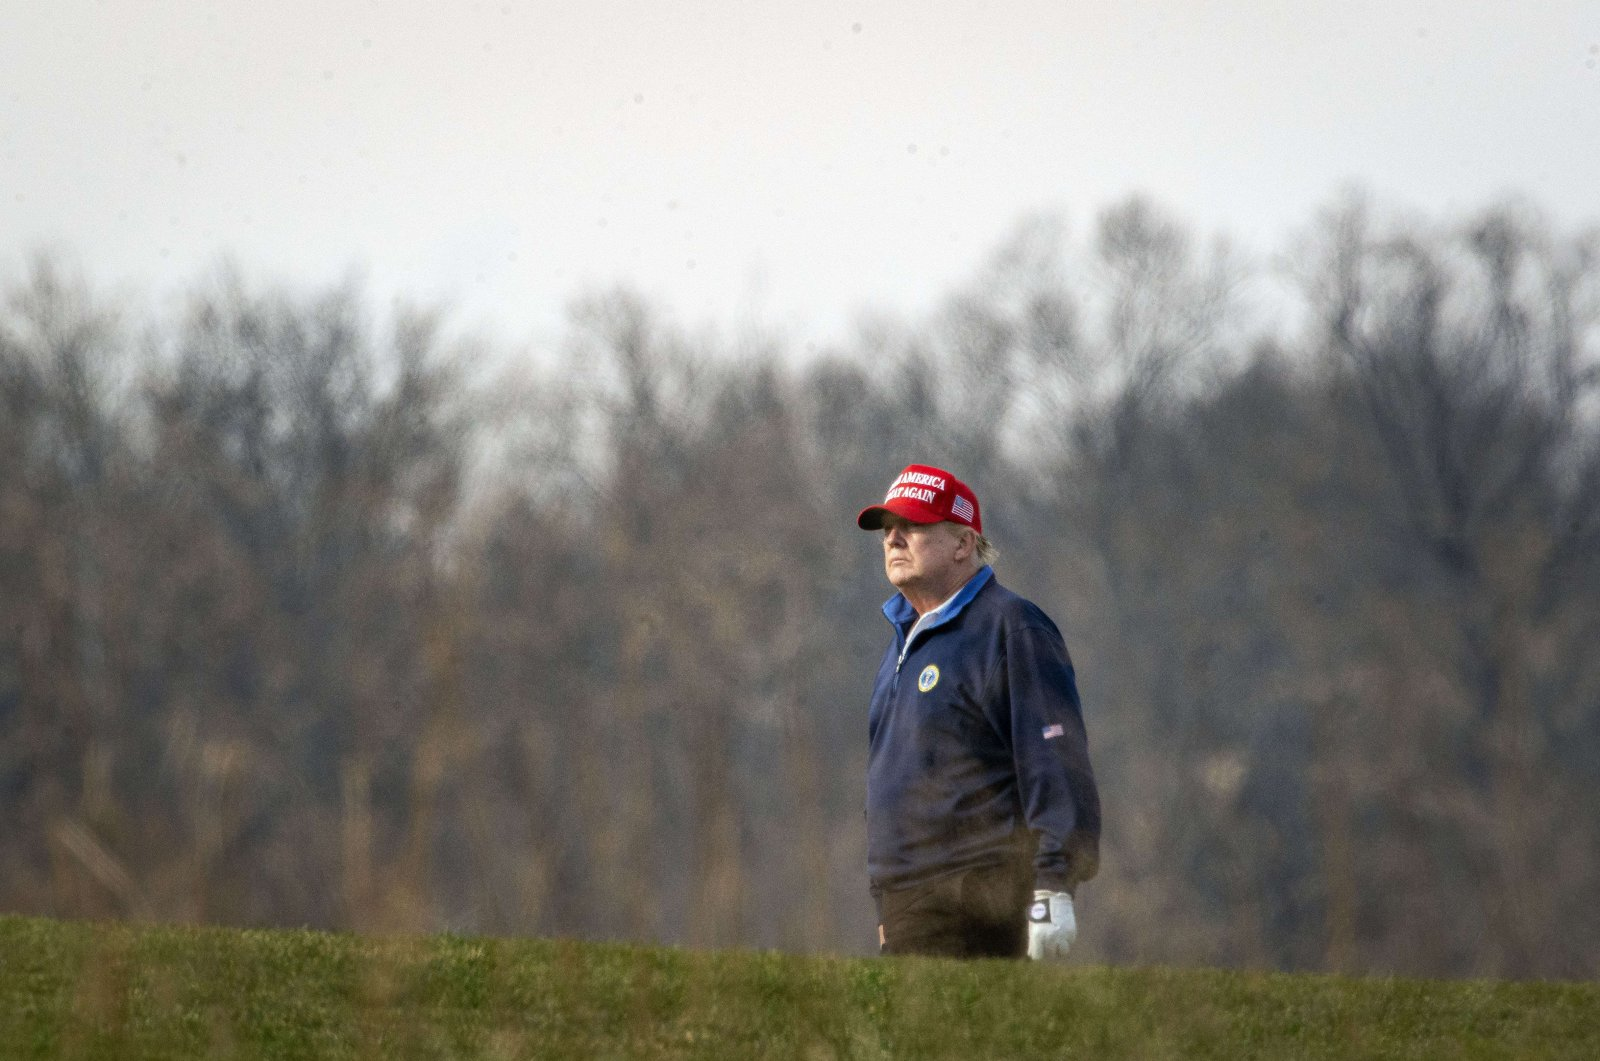 U.S. President Donald Trump golfs at Trump National Golf Club on December 13, 2020 in Sterling, Virginia. (AFP Photo)